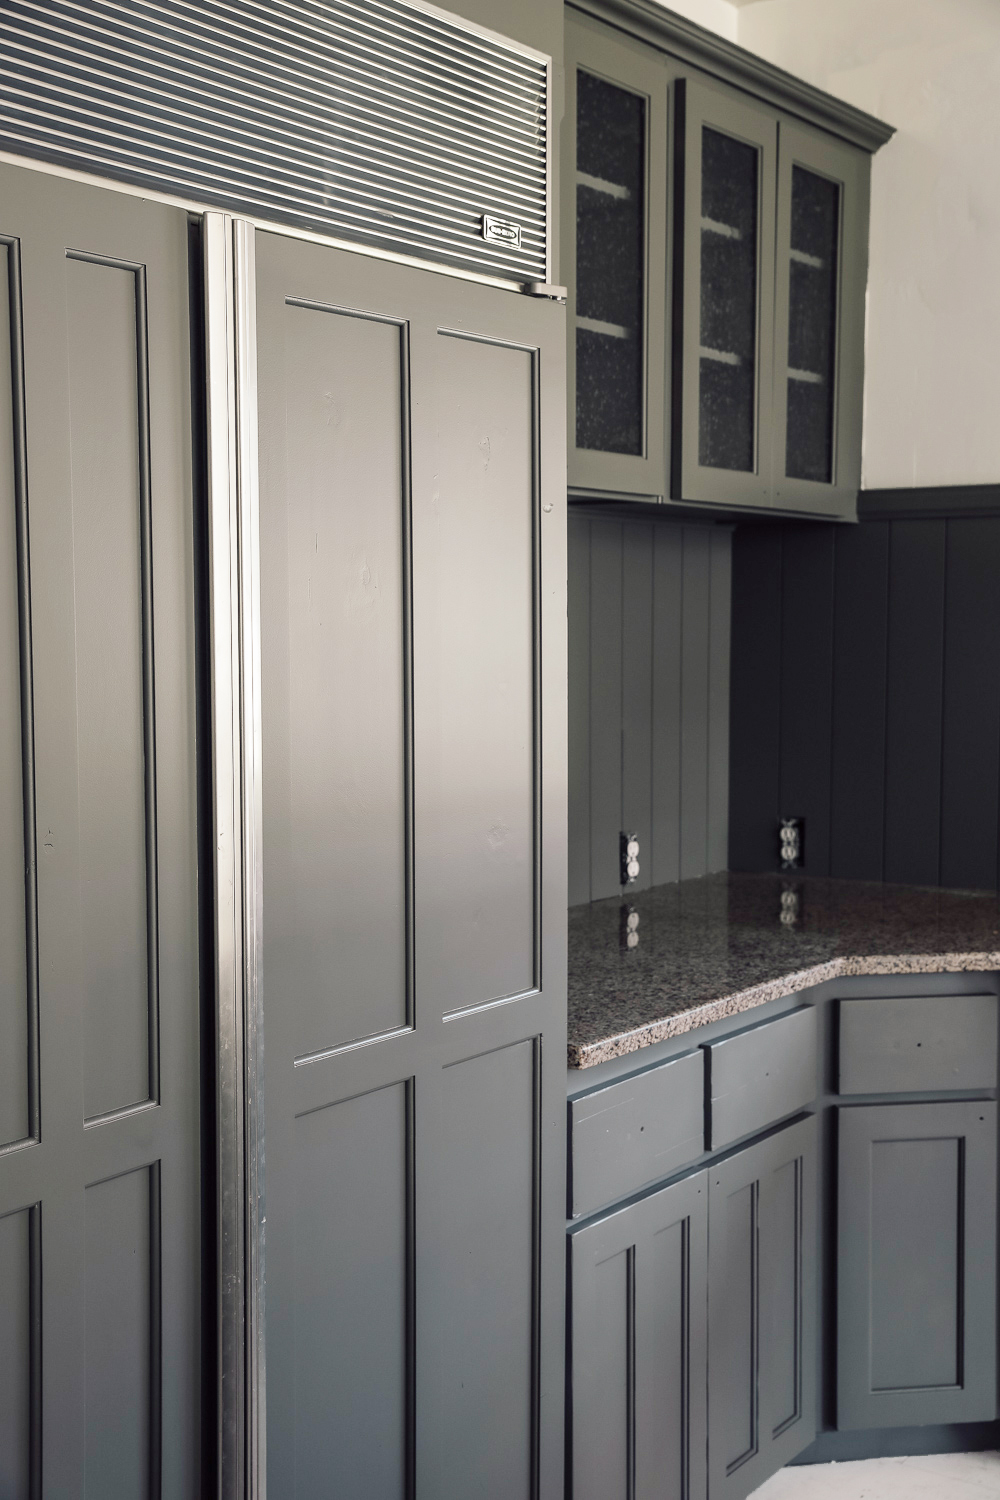 How To Paint Your Cabinets In A Weekend Without Sanding Them Chris Loves Julia